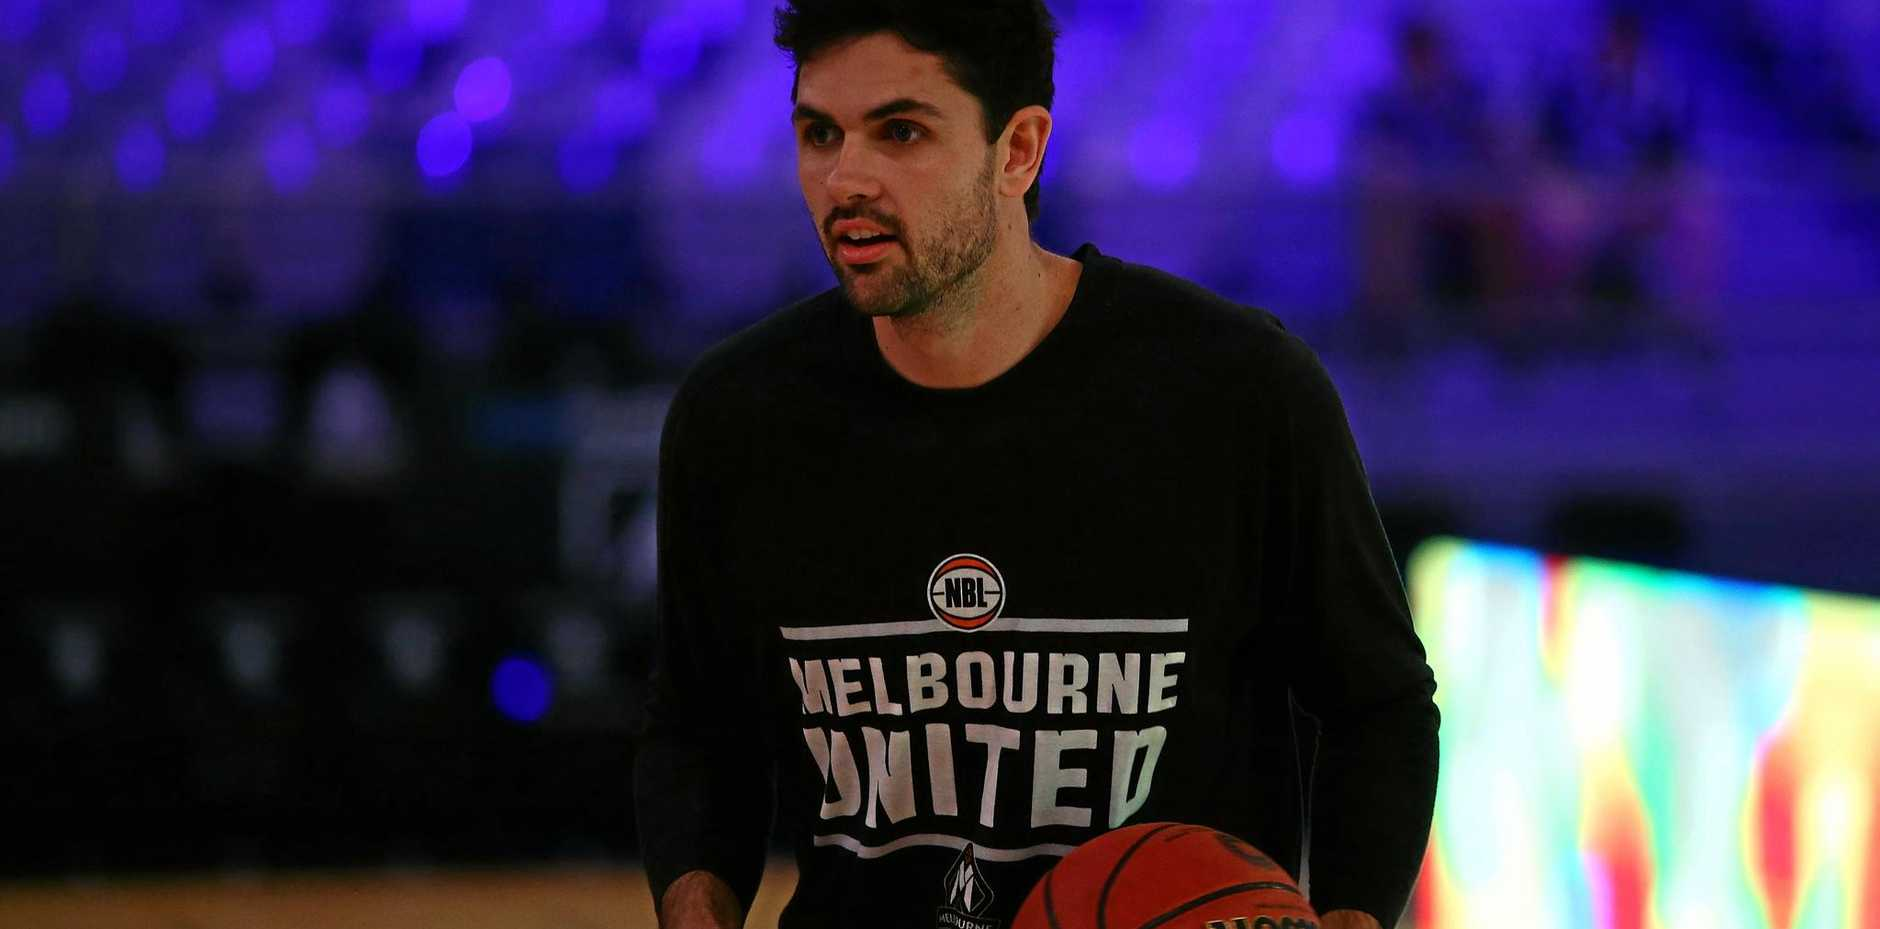 Todd Blanchfield of Melbourne United during a warm-up.